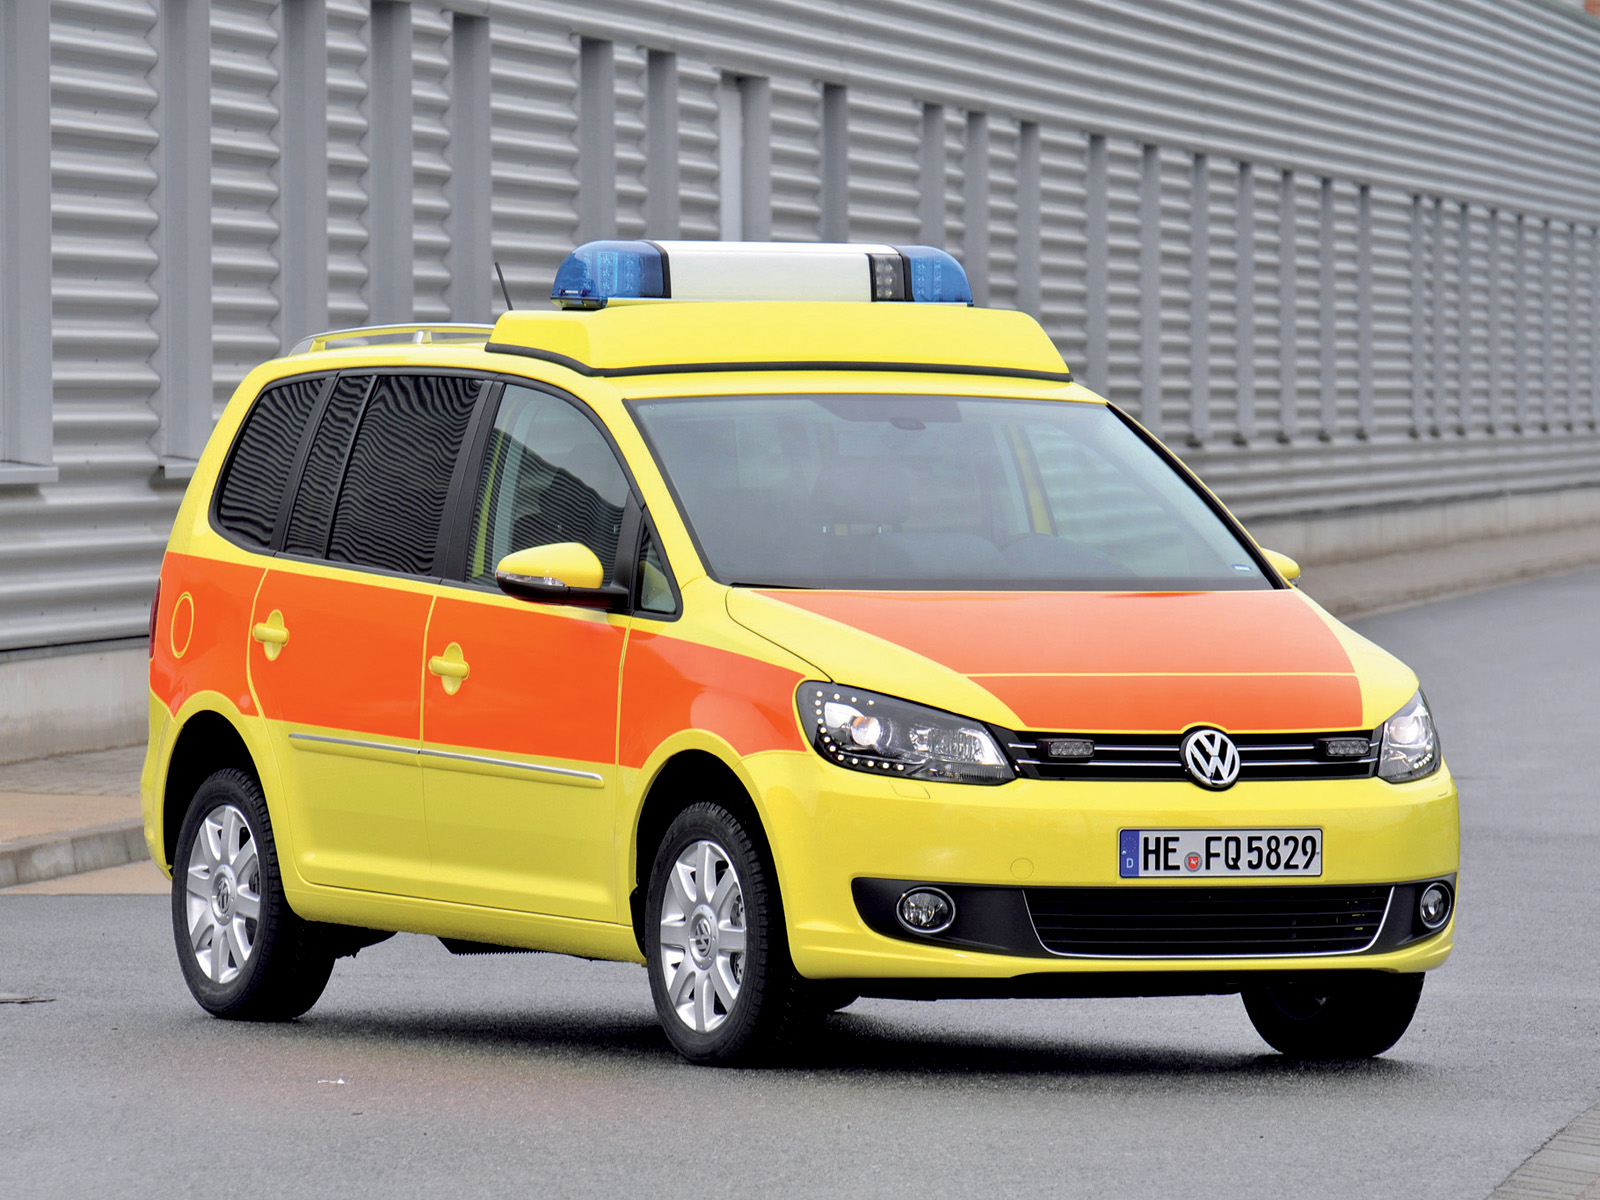 2010 Volkswagen Touran Notarzt ambulance emergency wallpaper